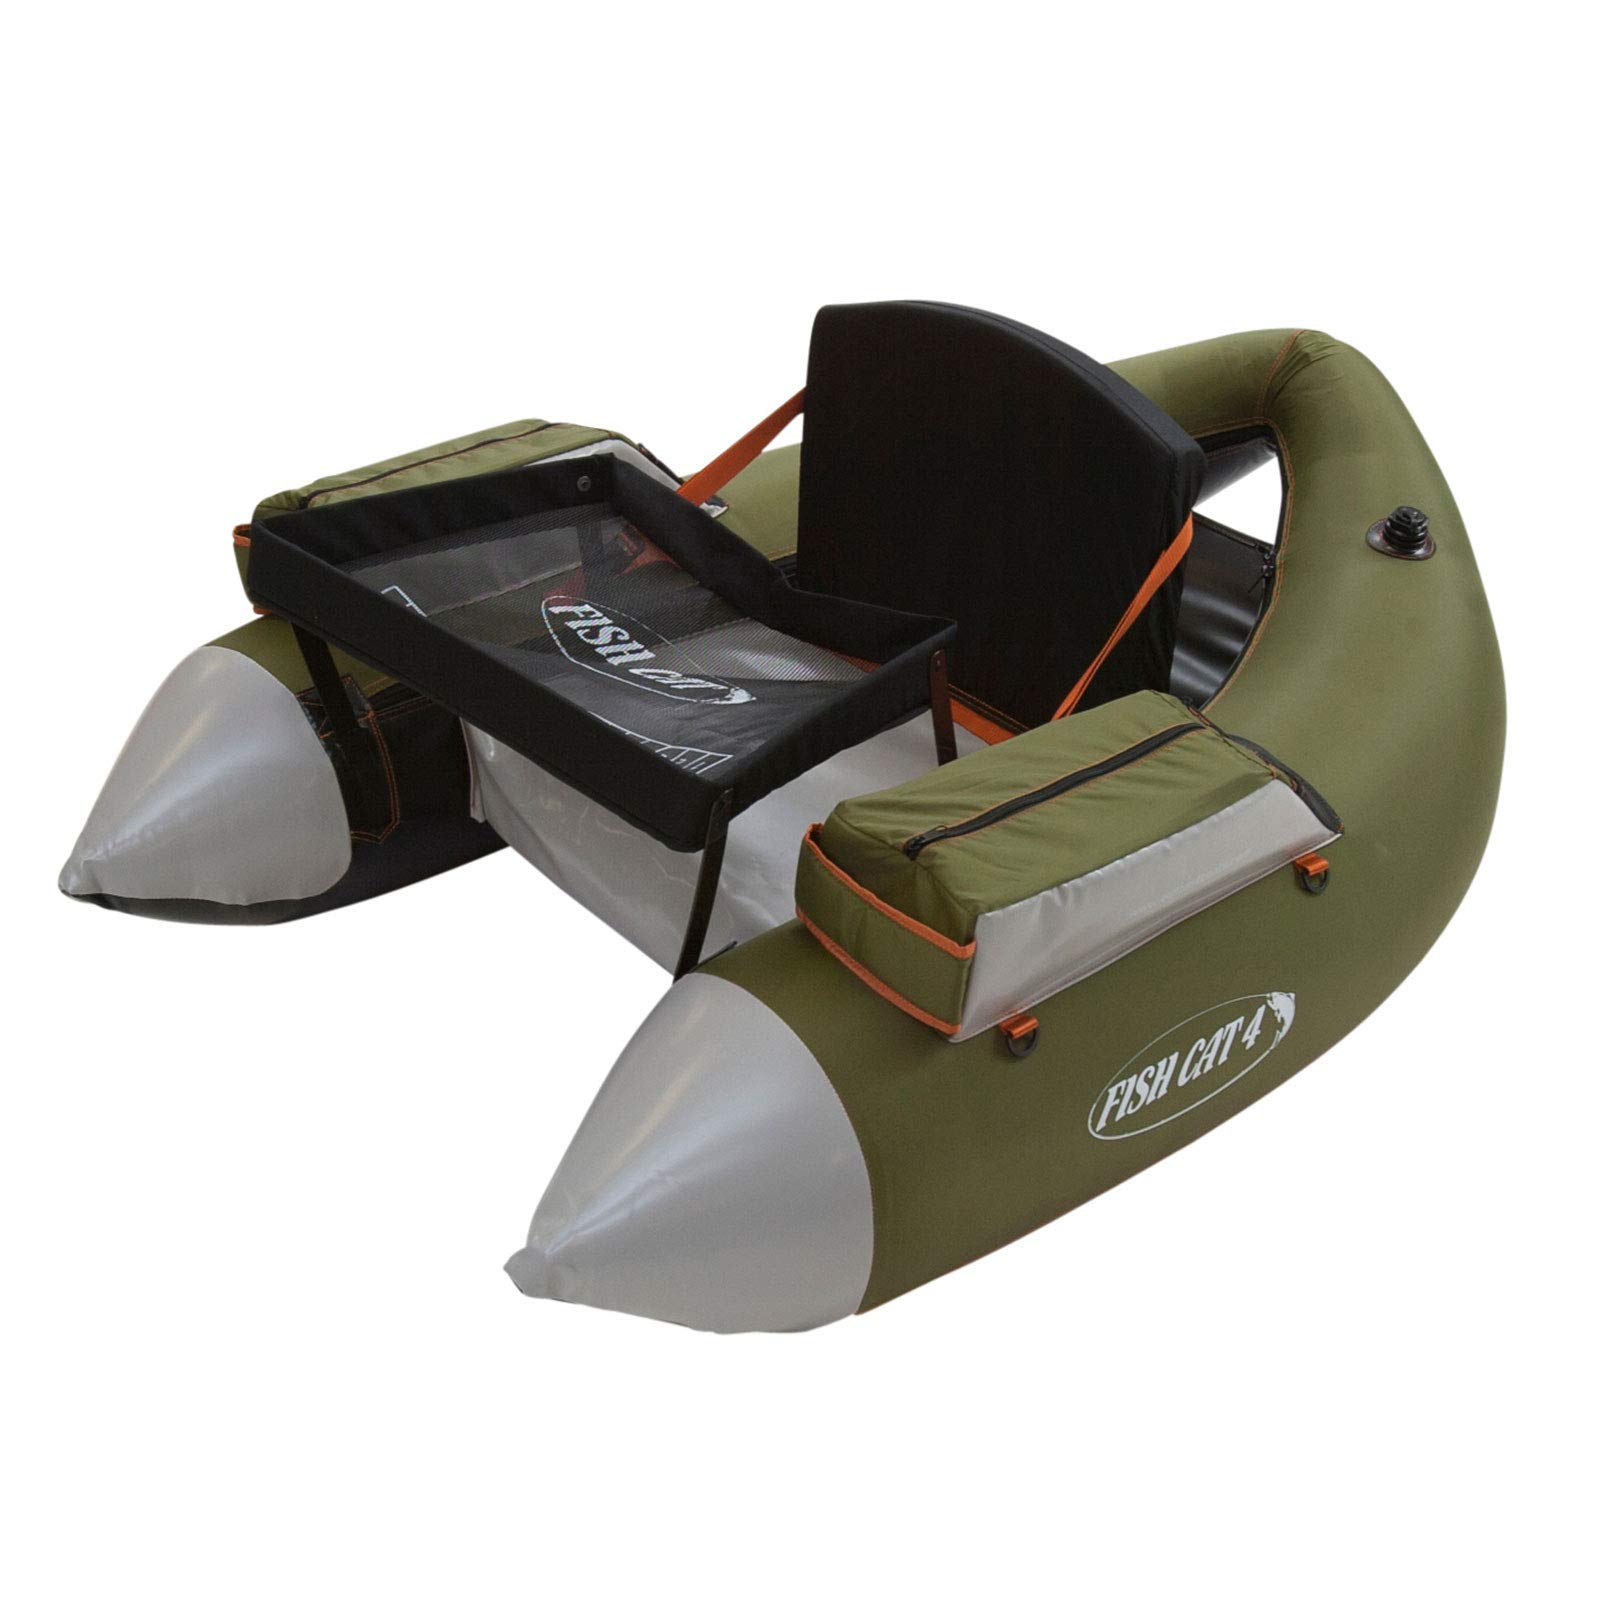 Outcast Fishcat 4-LCS by Outcast Sporting Gear